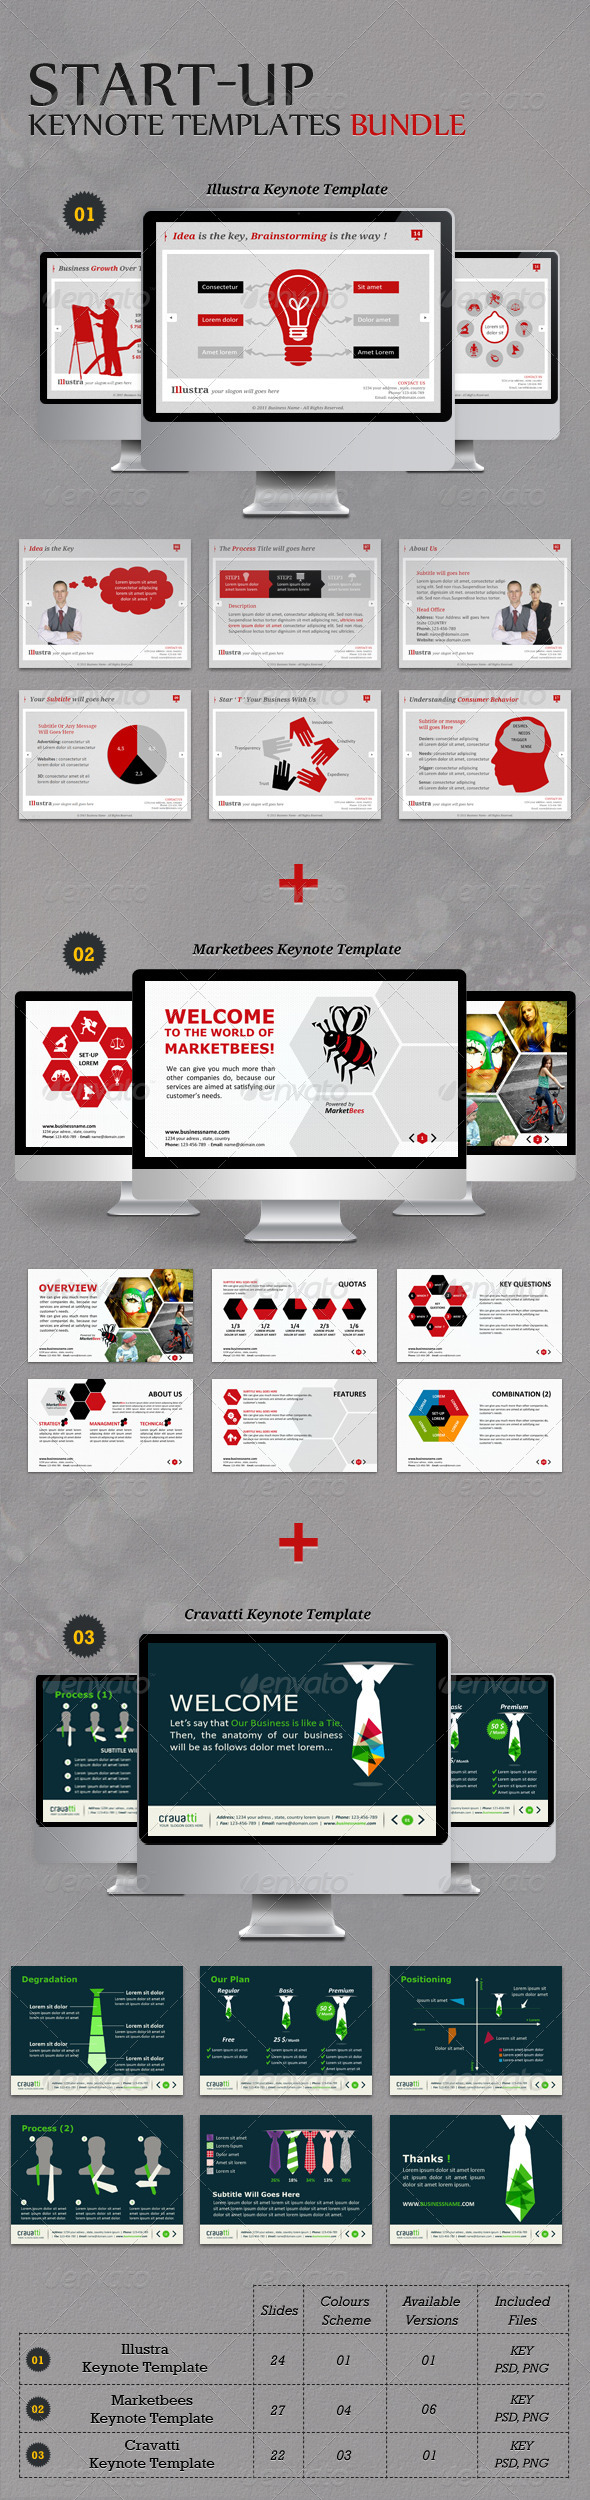 GraphicRiver Start-up Keynote Templates Bundle 6321442